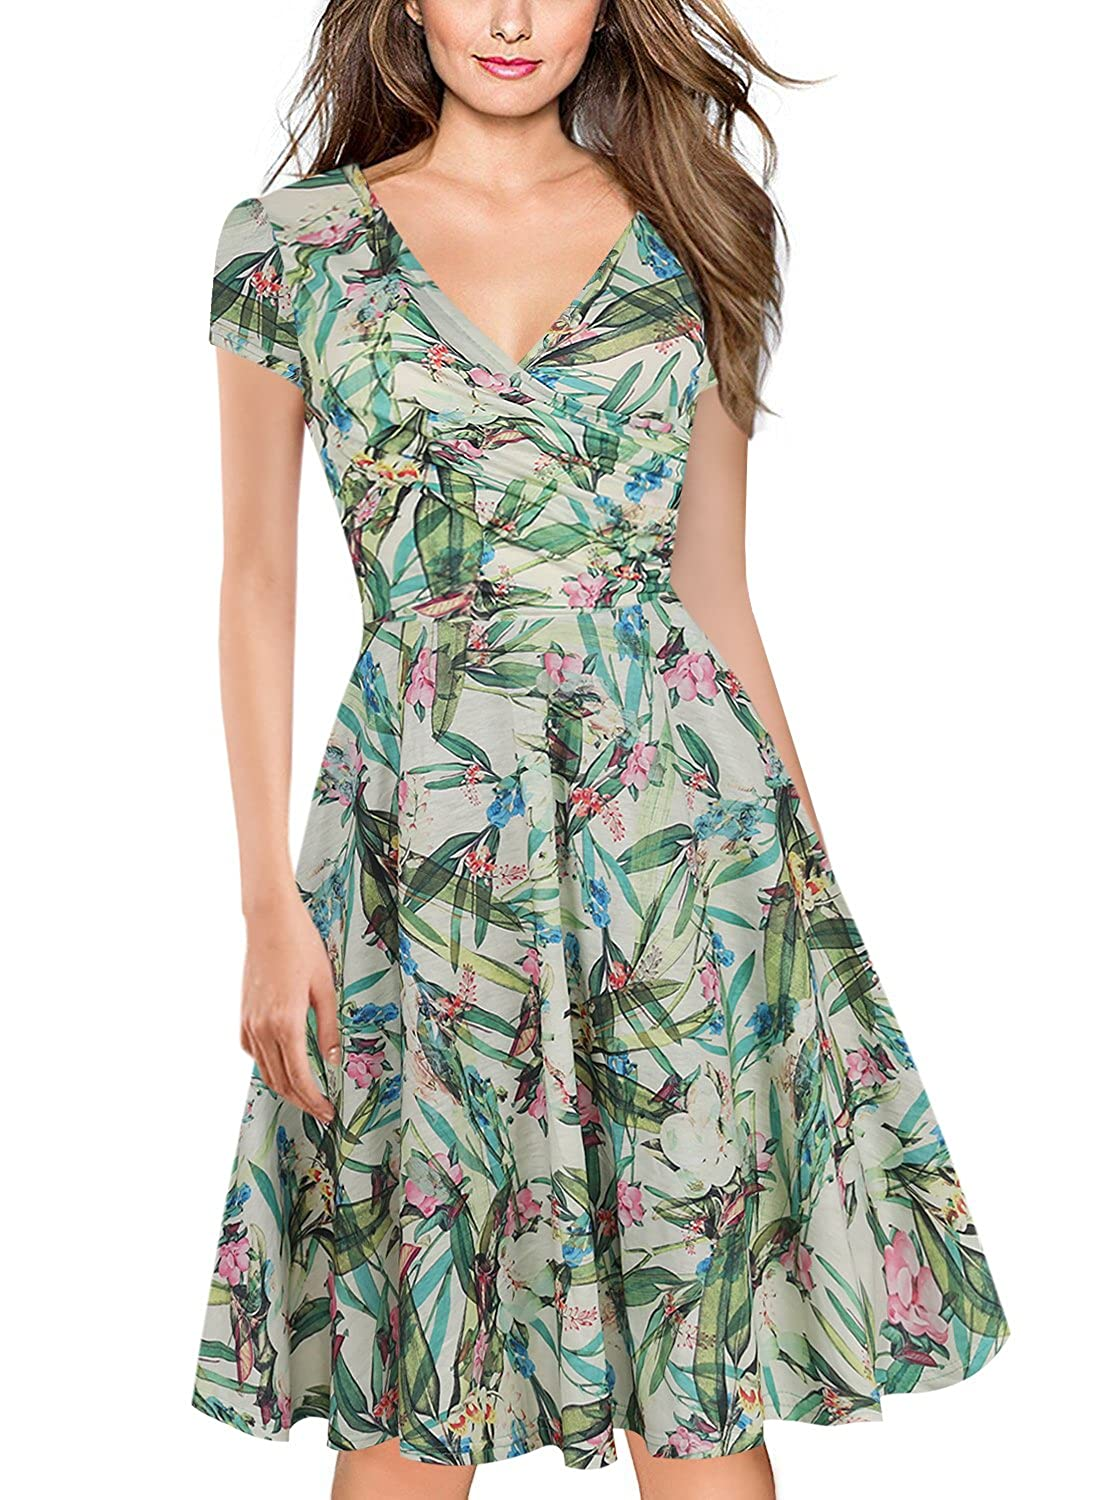 Green Print Naive Shine Women's Cap Sleeve VNeck Swing Summer Casual Dress